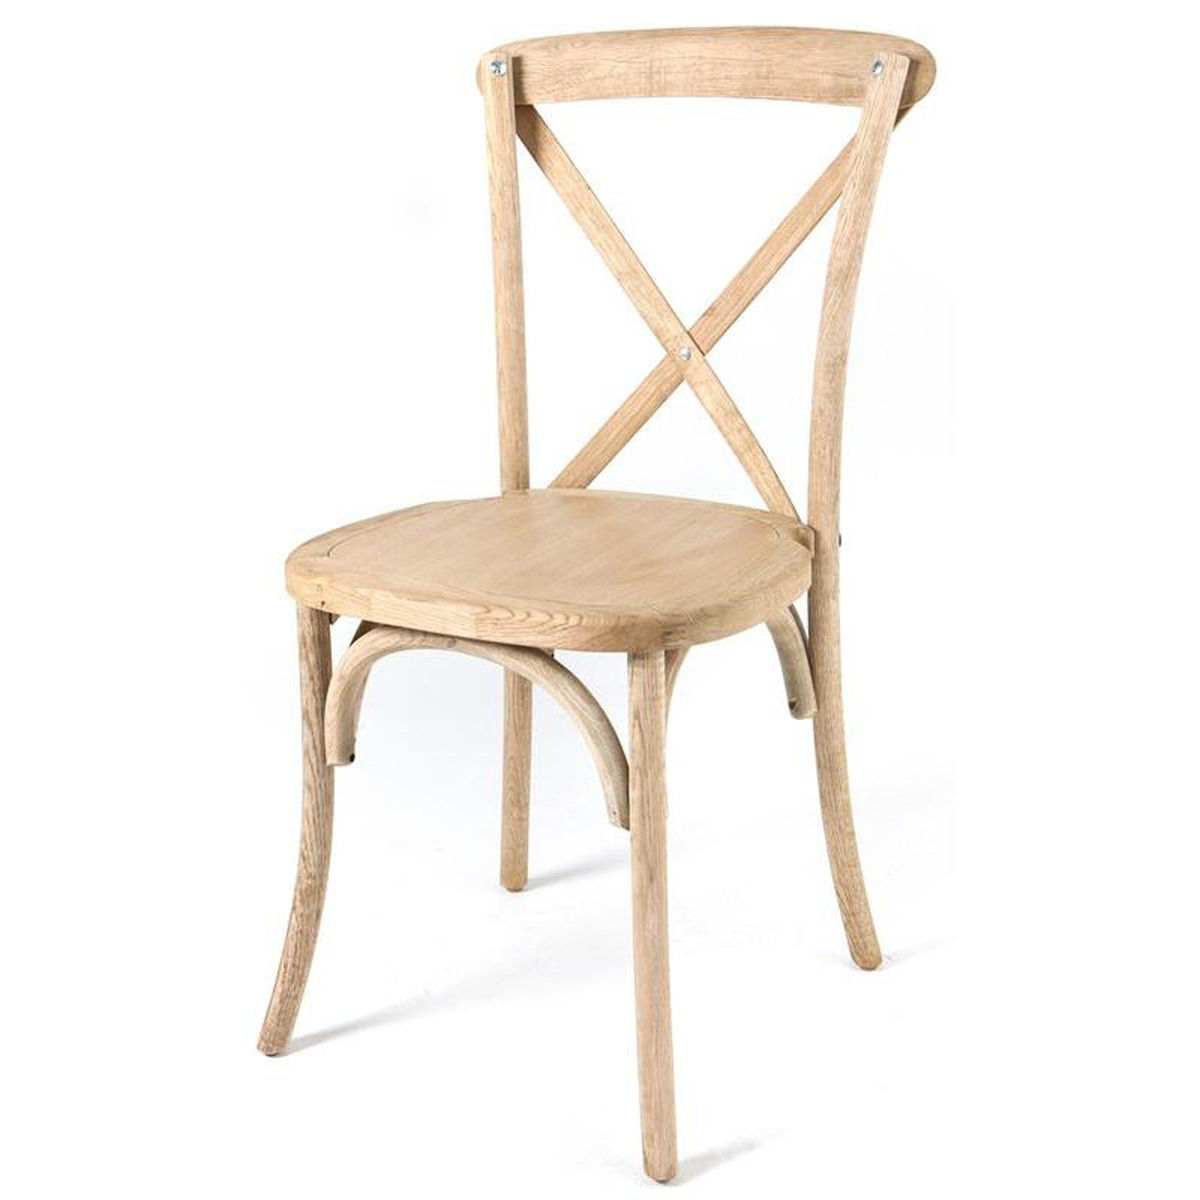 Wood cross back chair